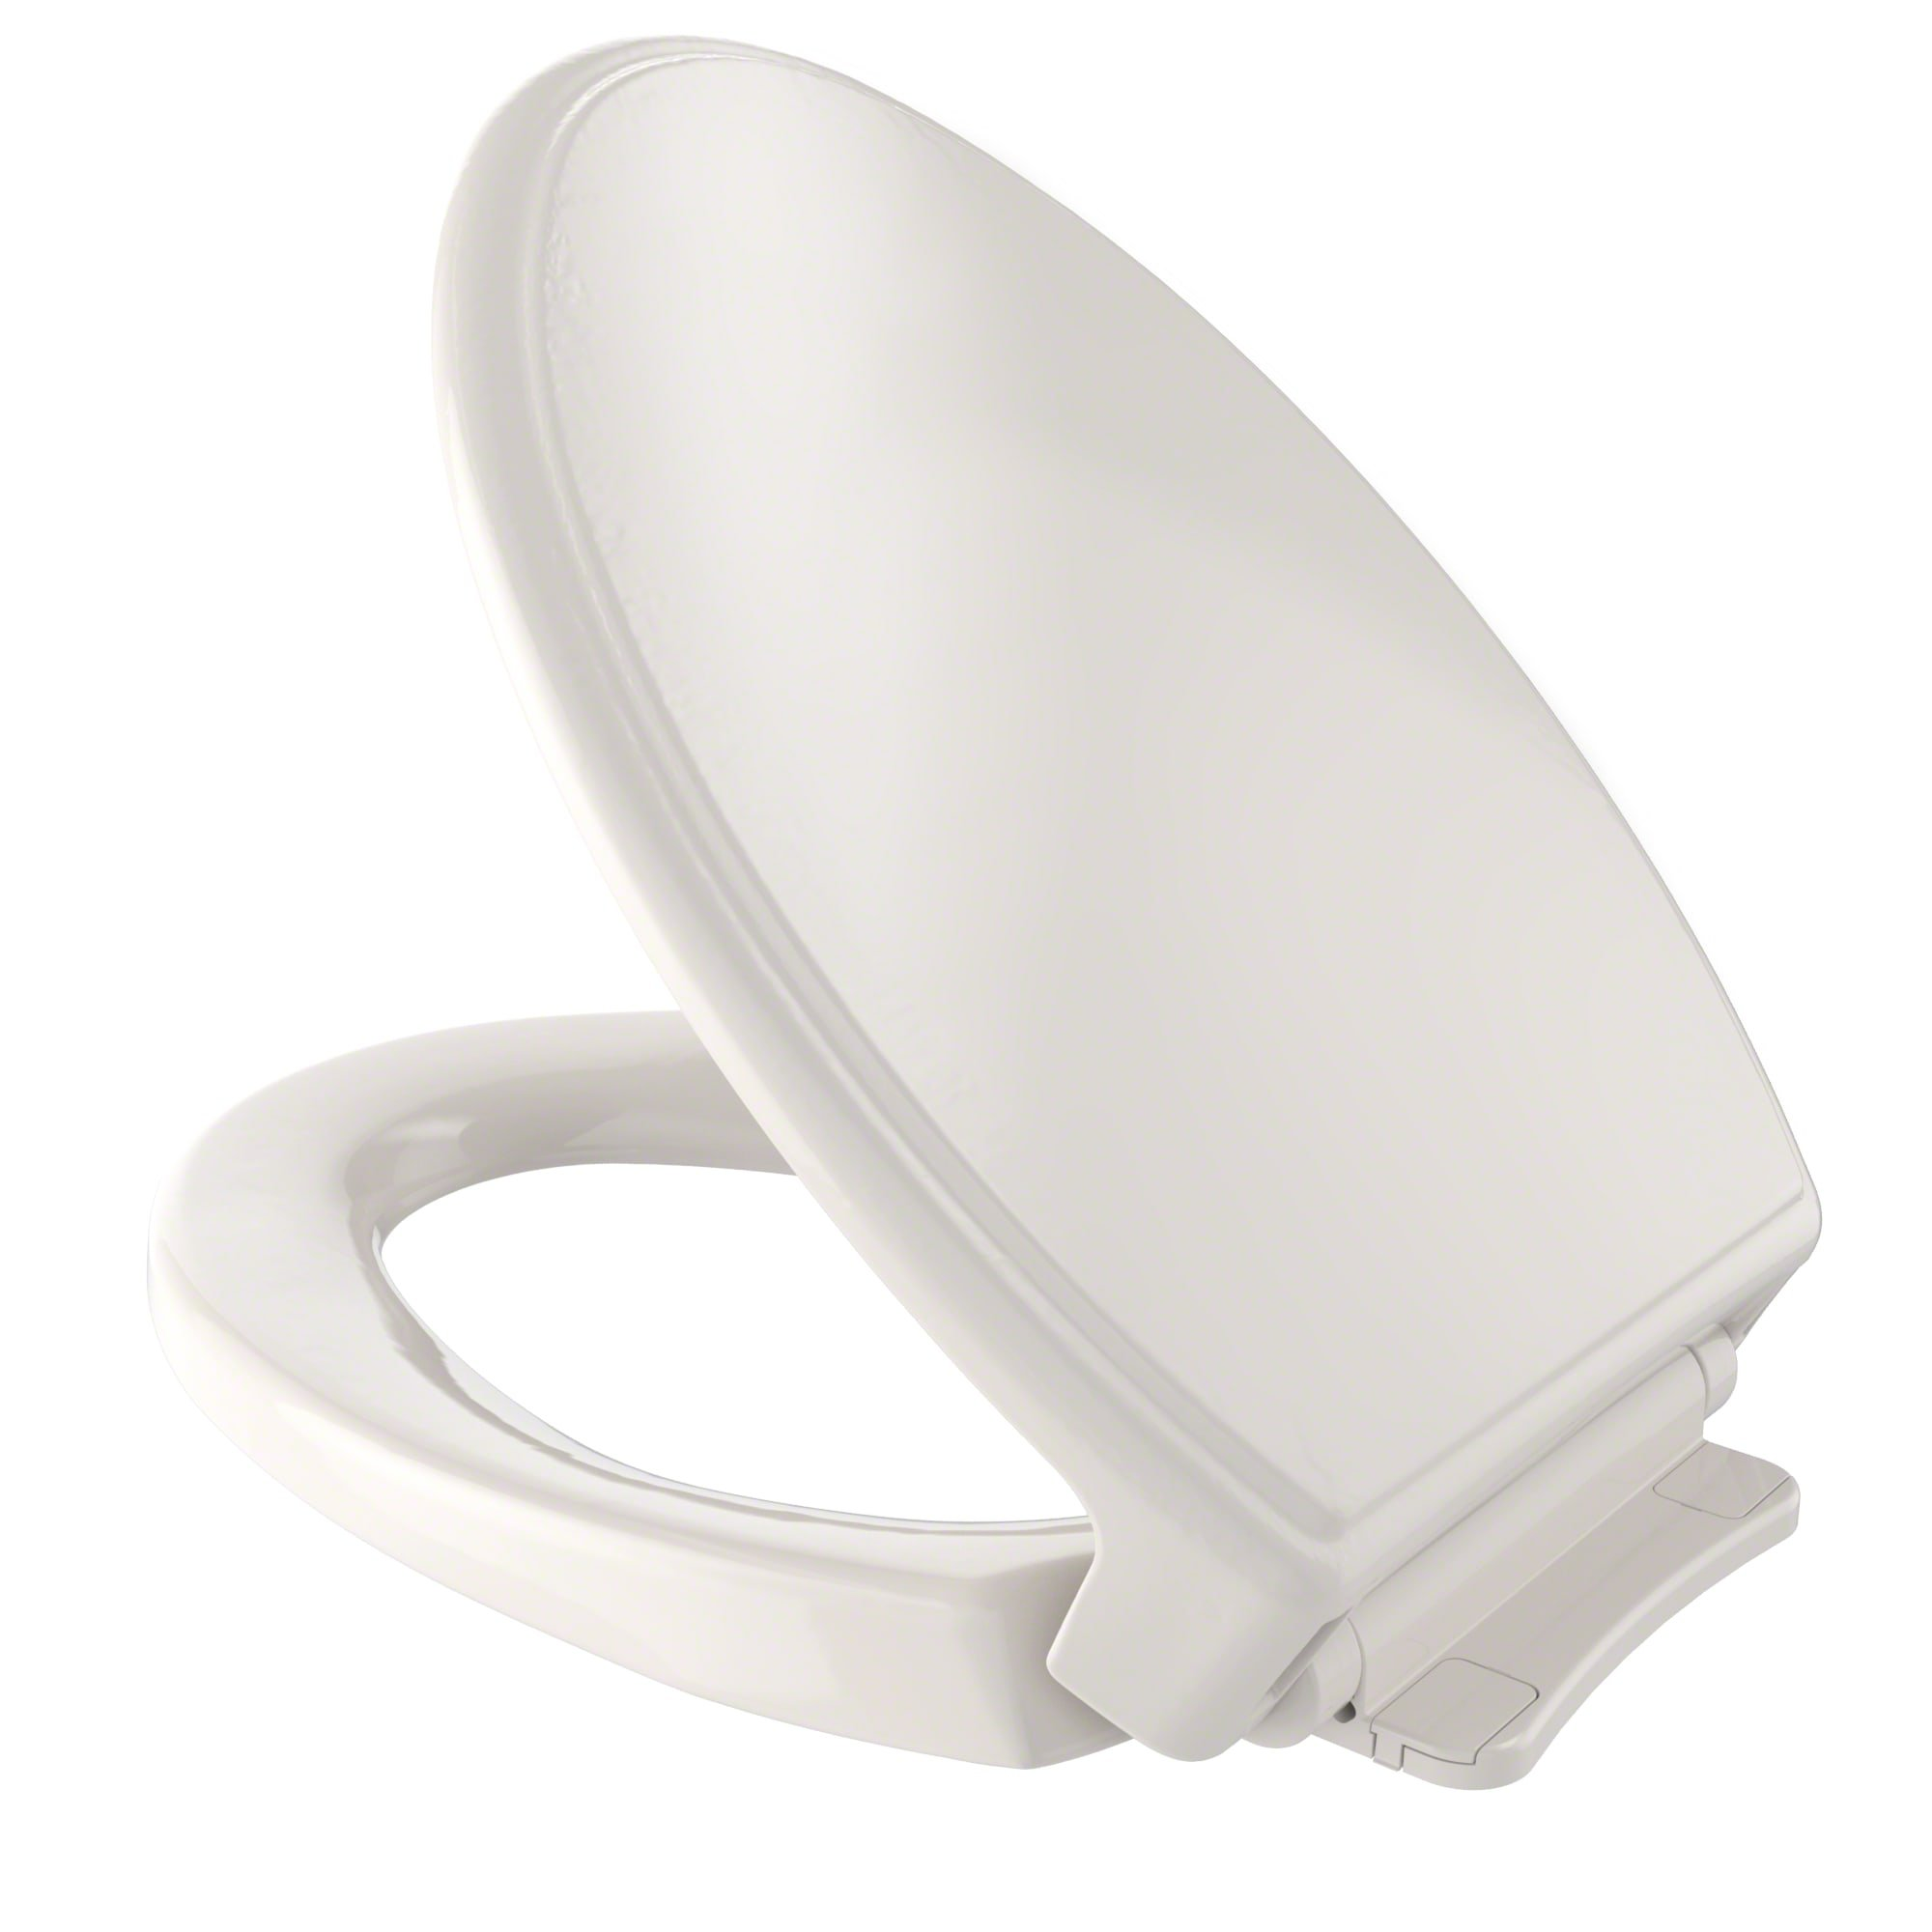 Cheap Softclose Toilet Seat, find Softclose Toilet Seat deals on ...